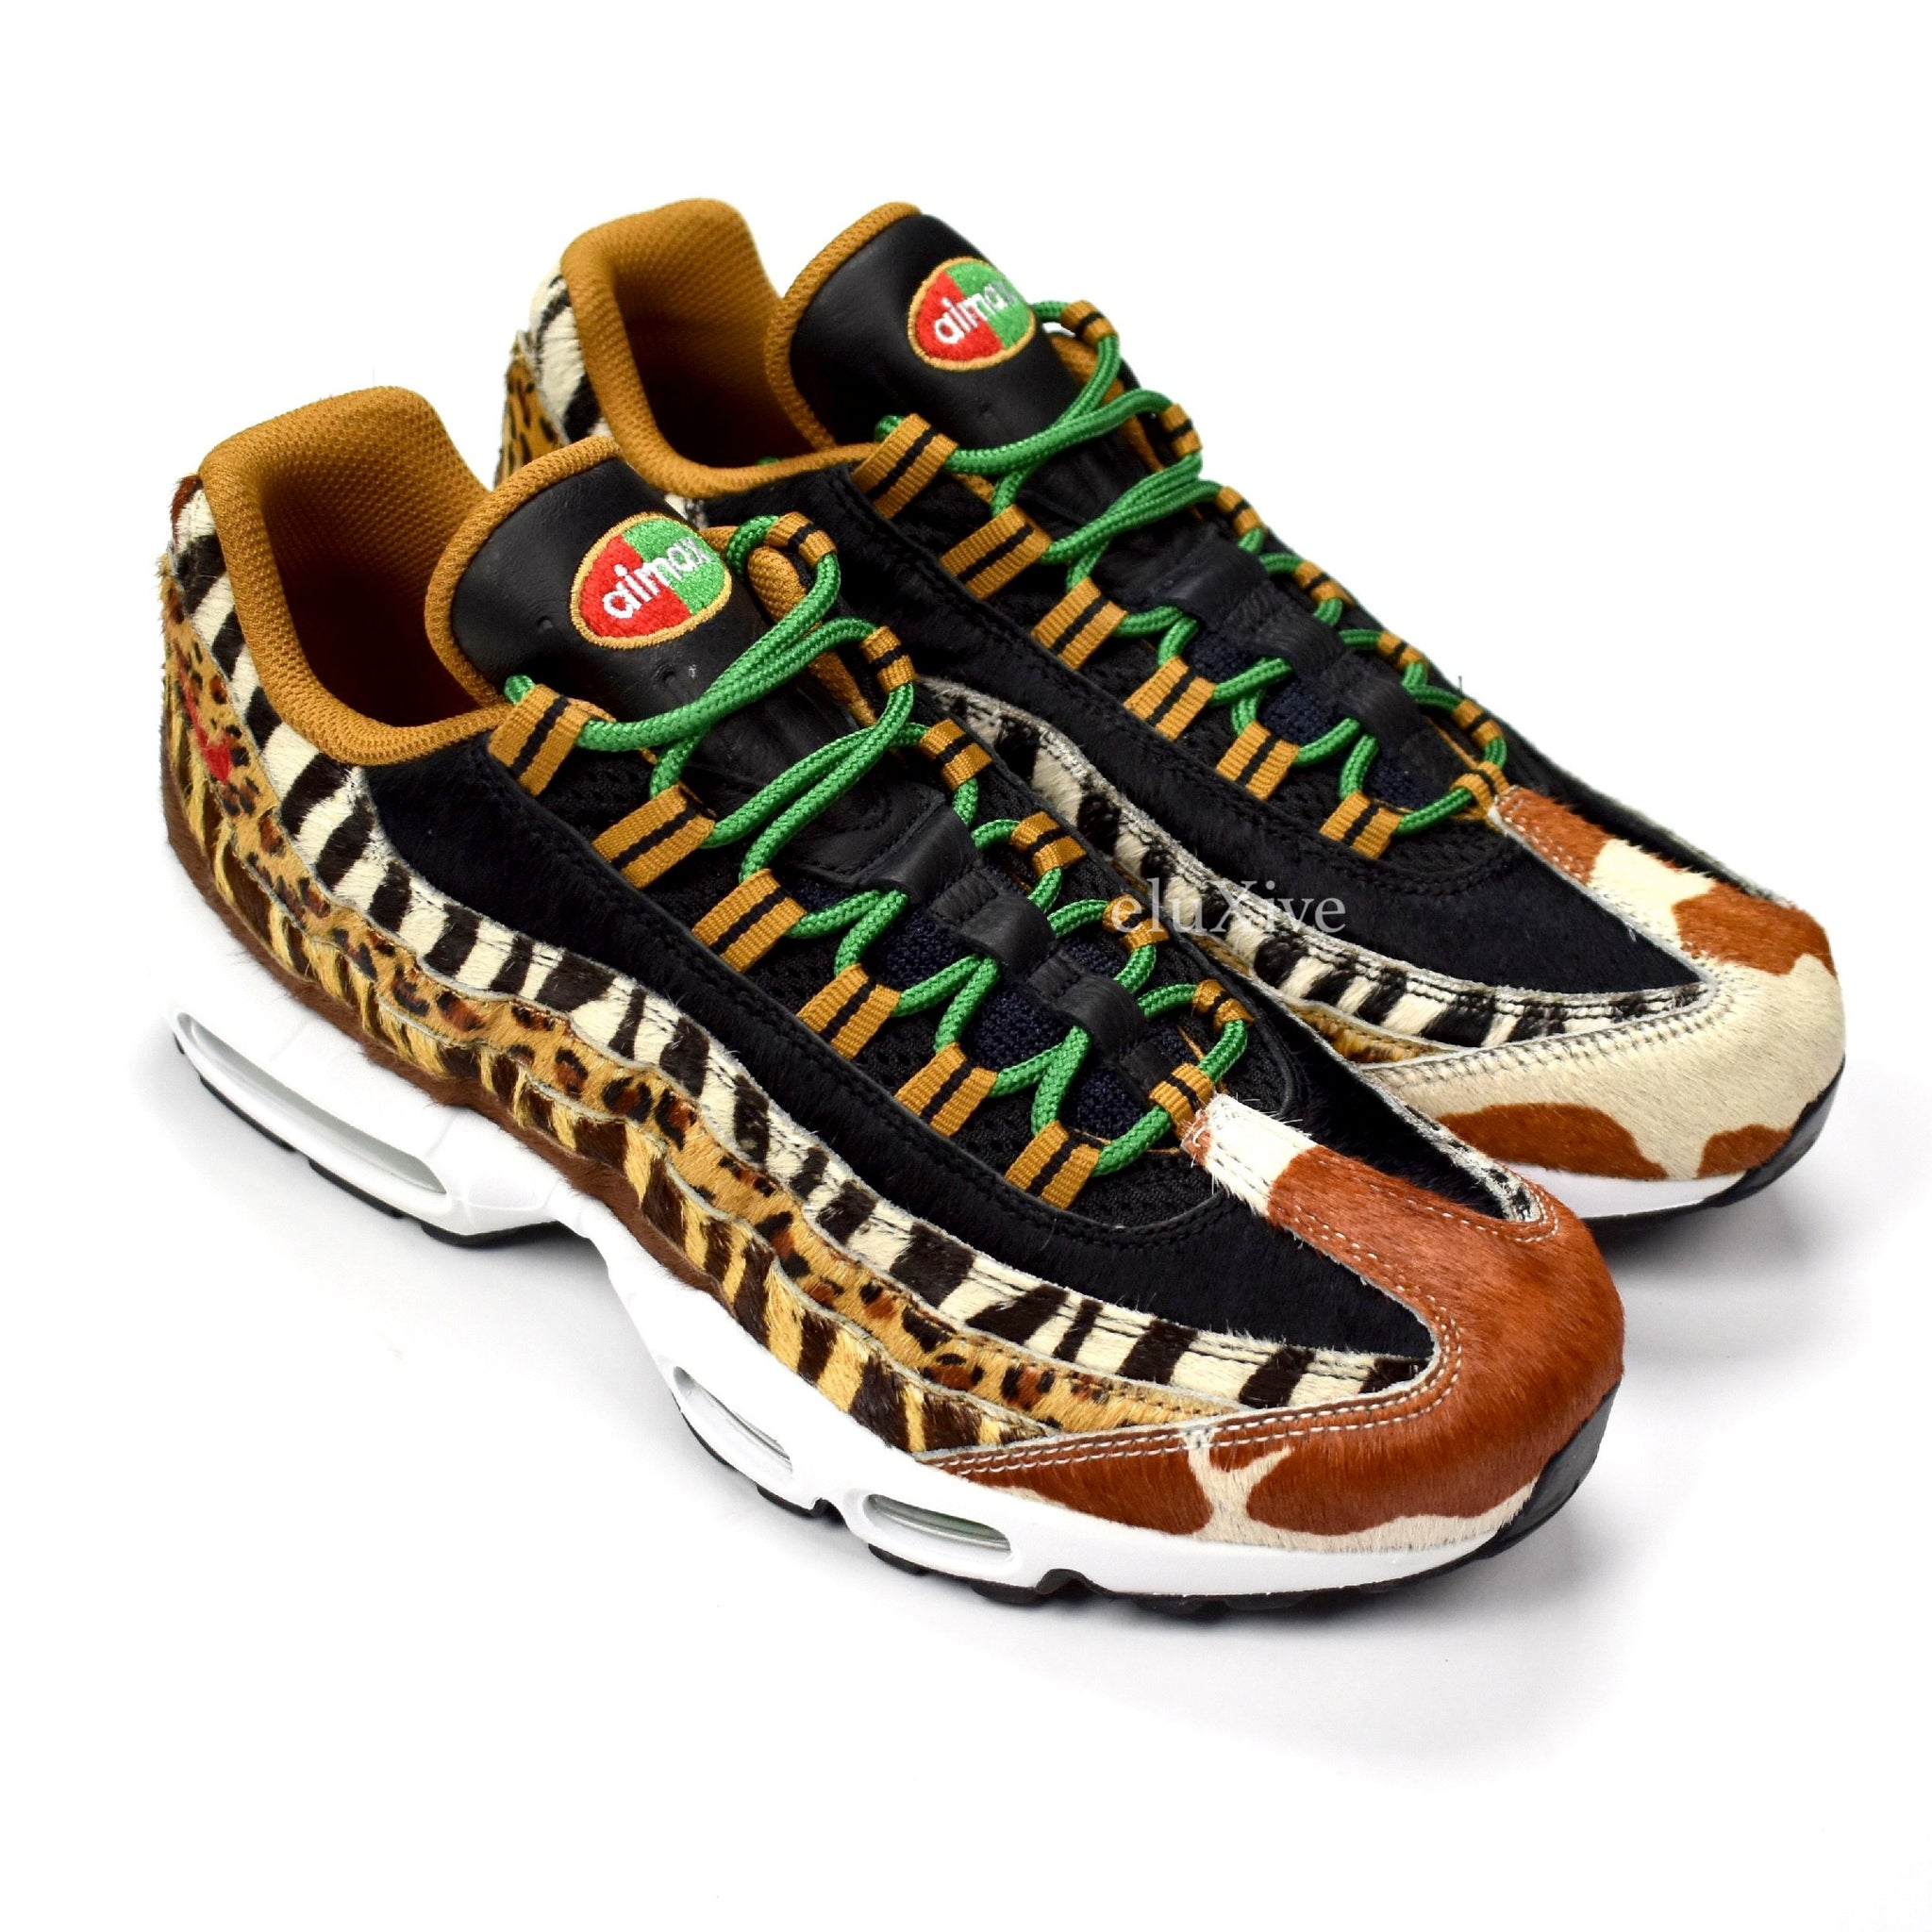 best service b6745 26fed Nike x Atmos - Air Max 95 DLX Animal Pack